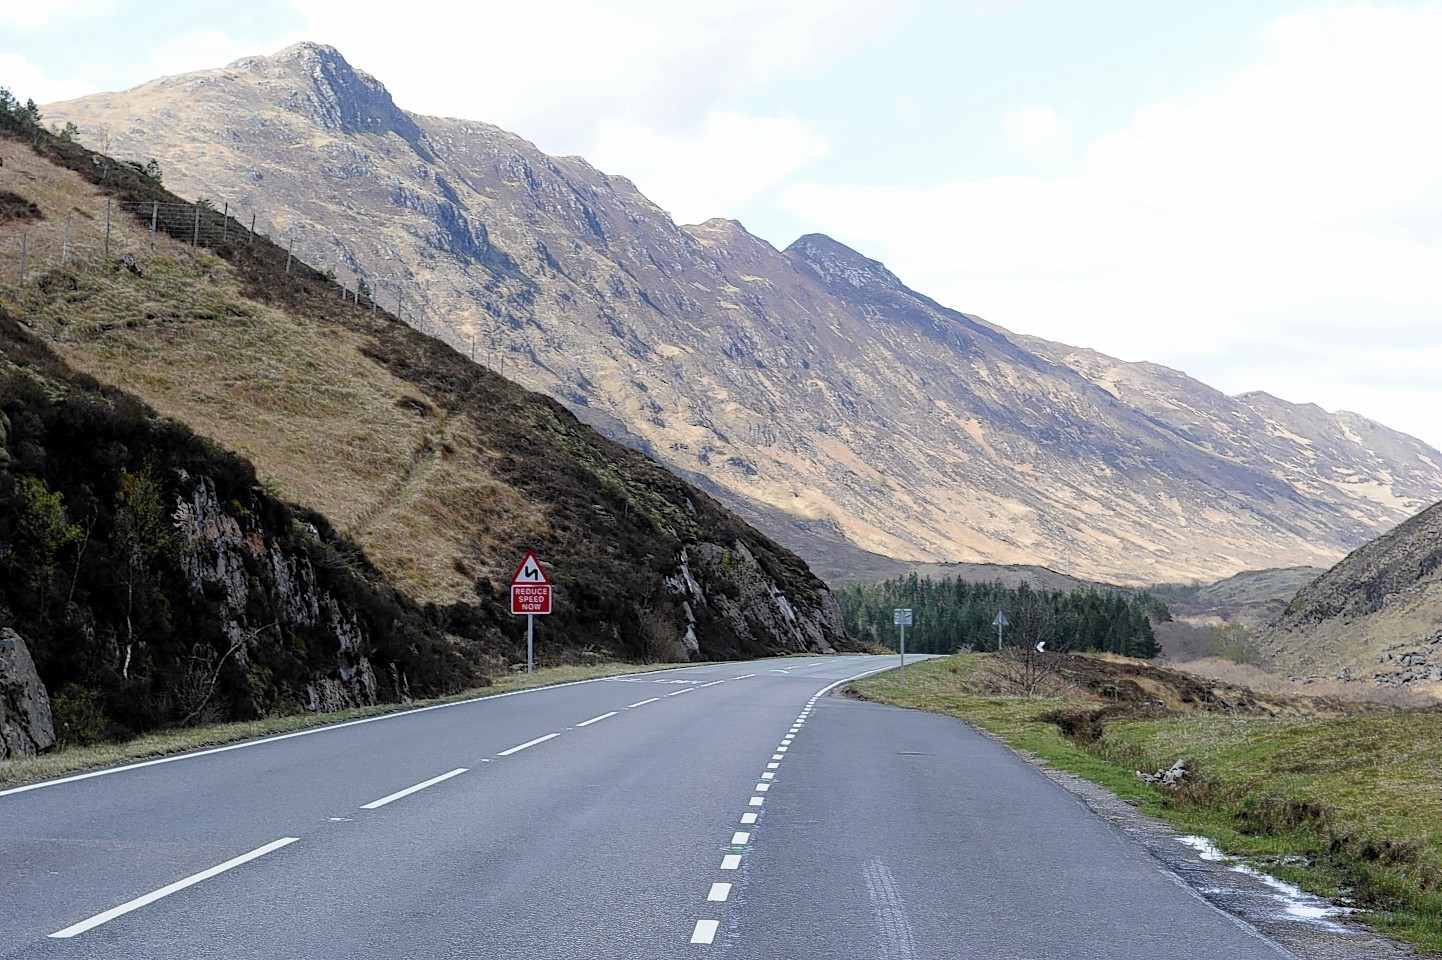 The incident happened on the A87 road